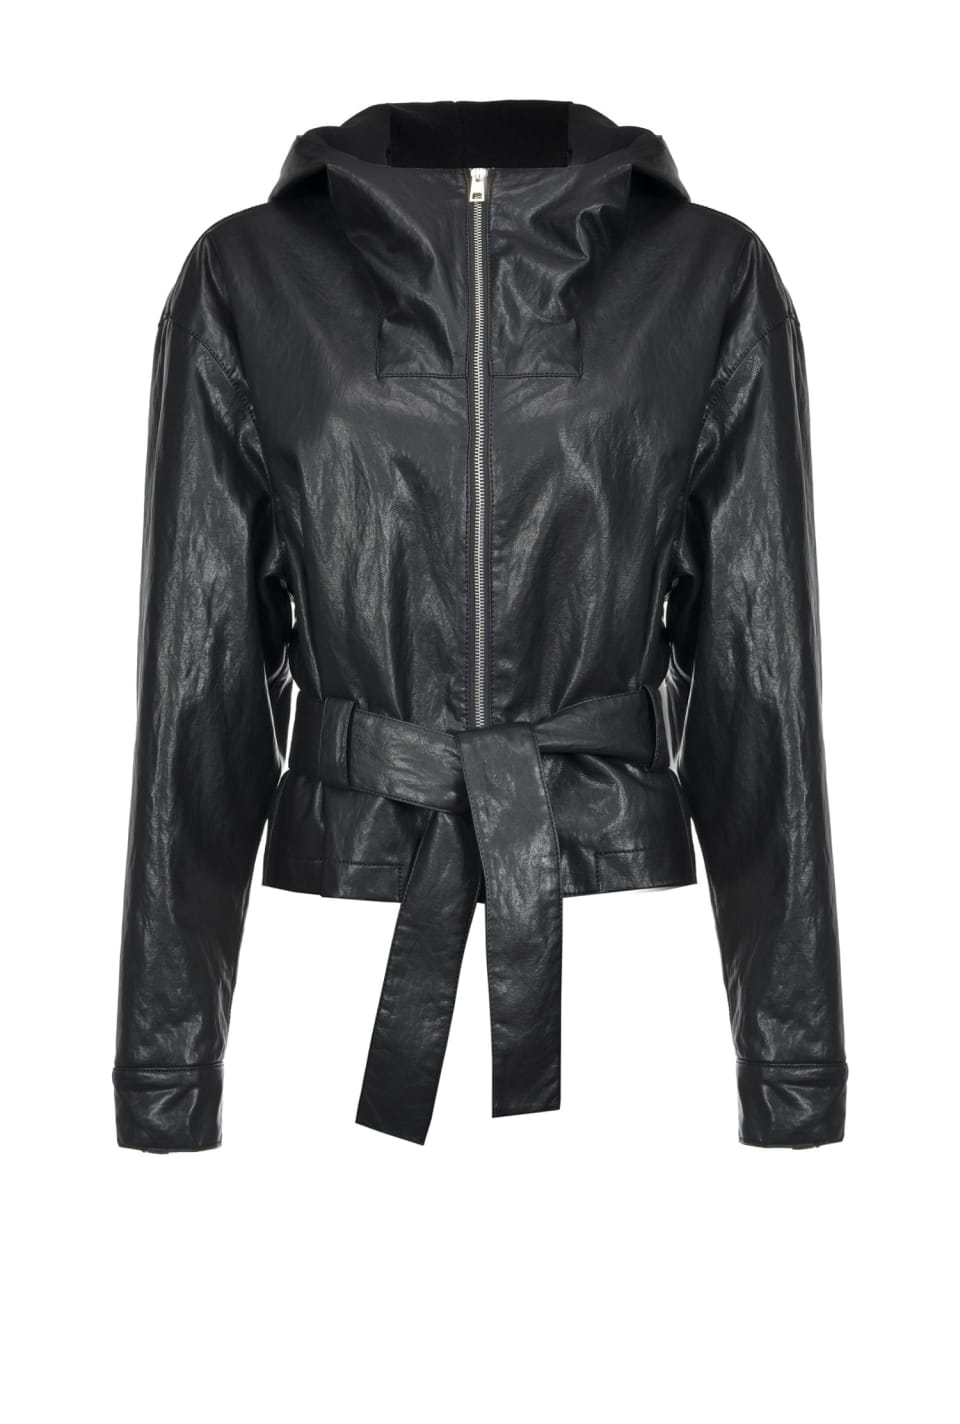 Jacket in leather-look fabric